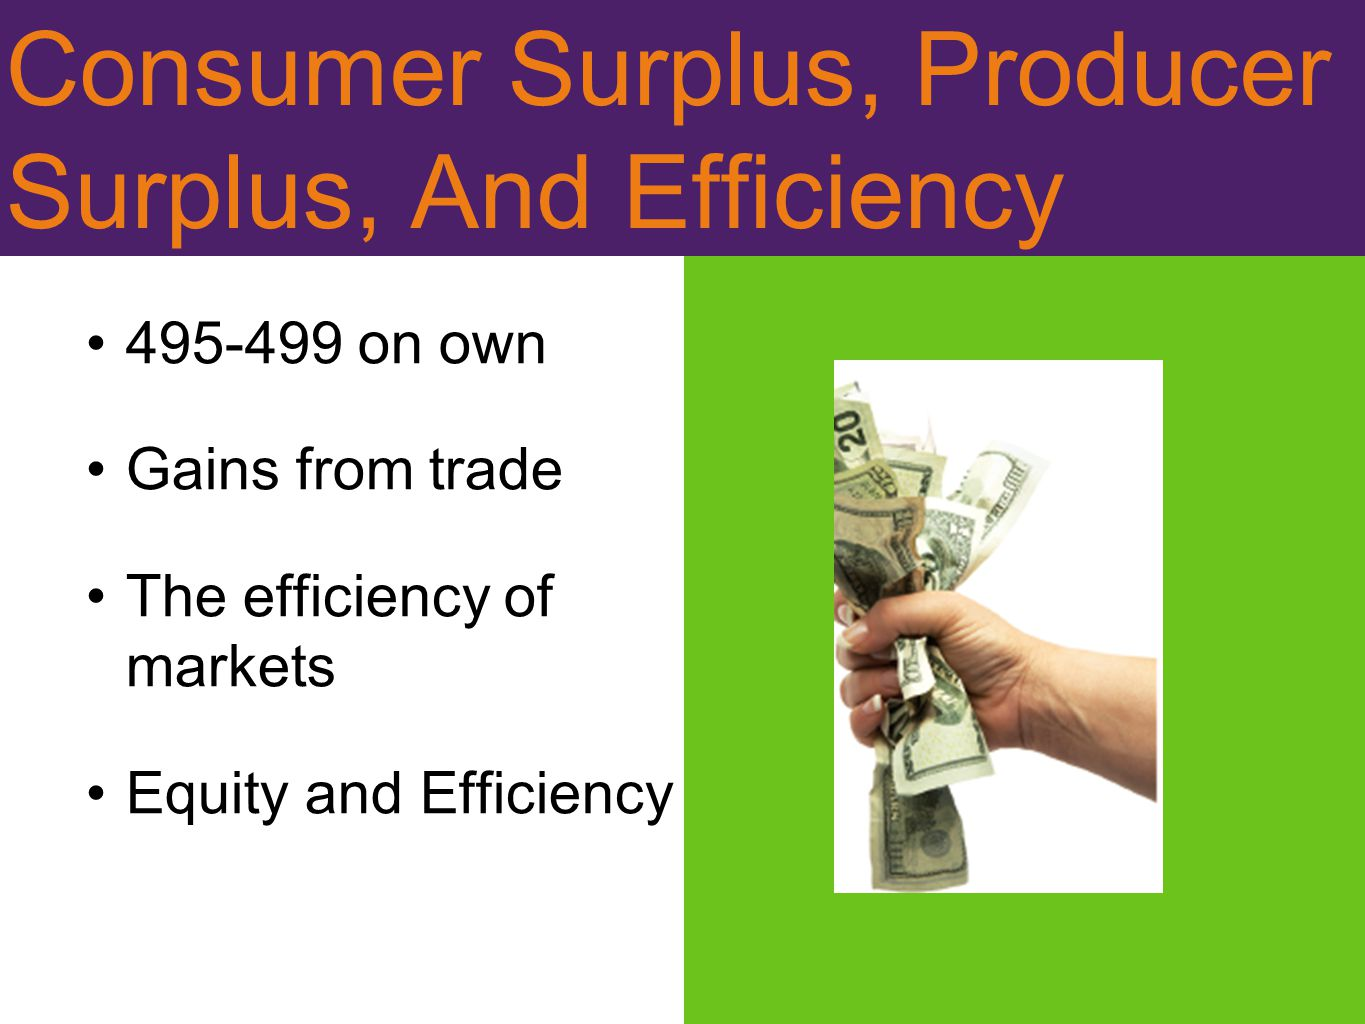 Consumer Surplus, Producer Surplus, And Efficiency